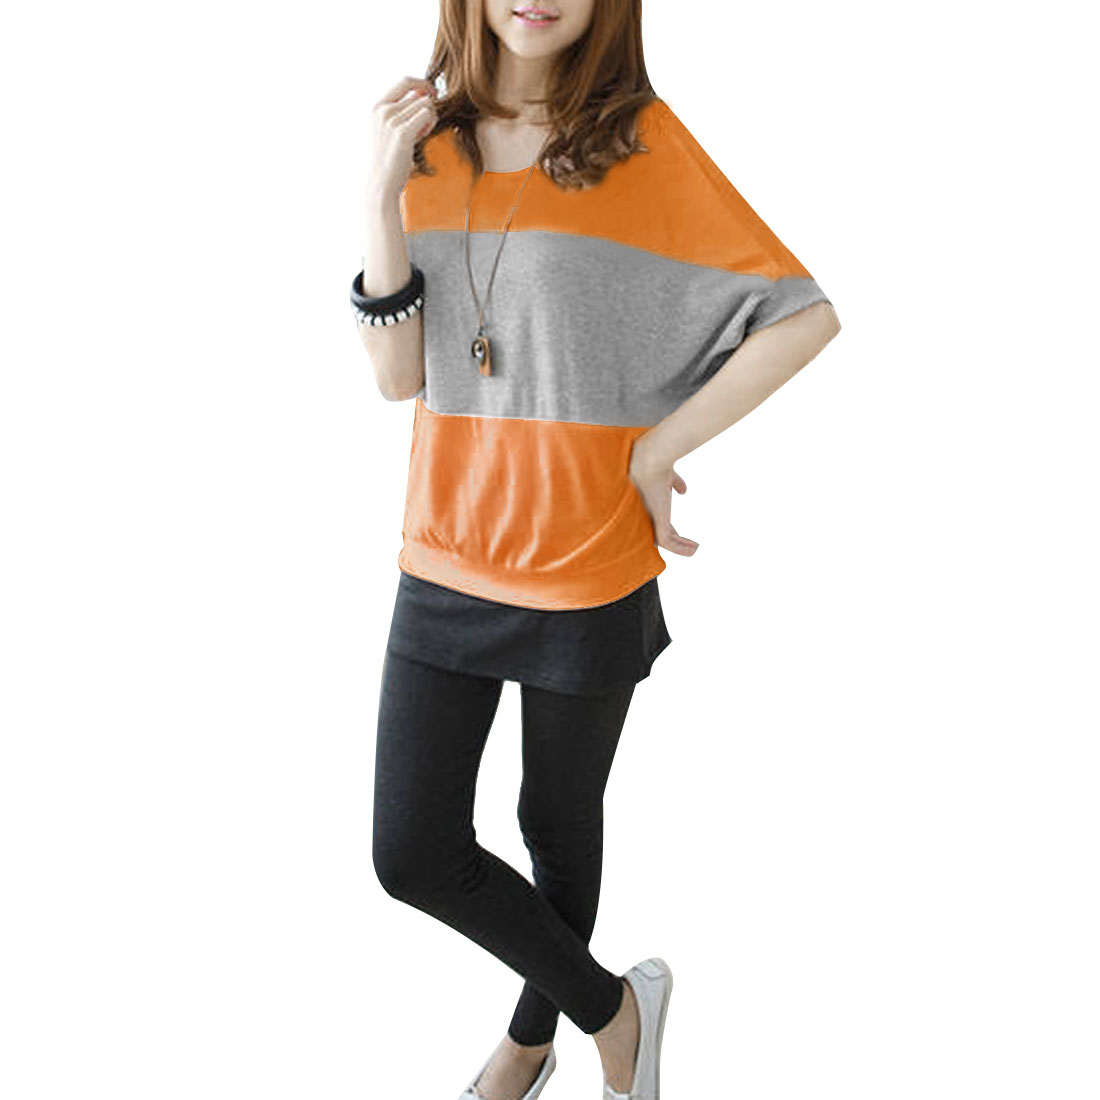 Round Neck Summer Leisure Orange Gray Spliced Top T-shirt XS for Woman